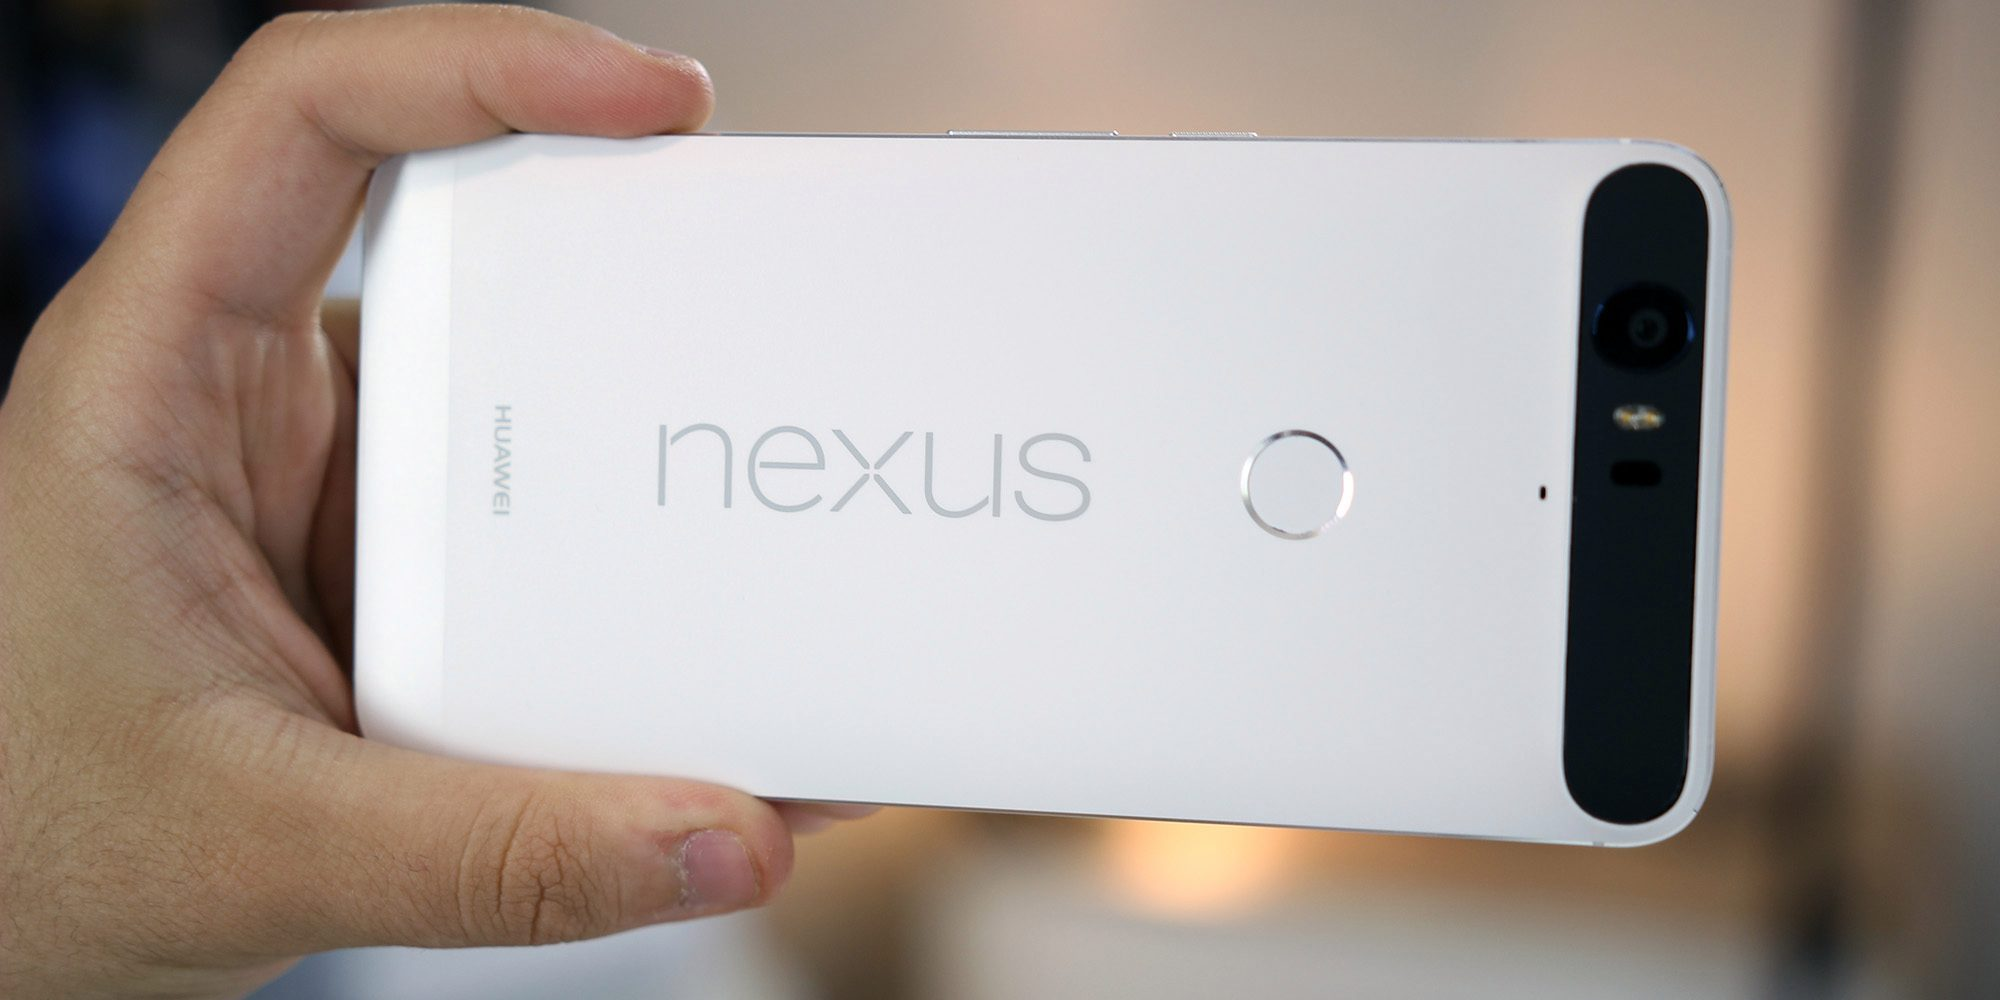 [Update: Claims open] Google, Huawei will pay faulty Nexus 6P owners up to $400 in lawsuit settlement